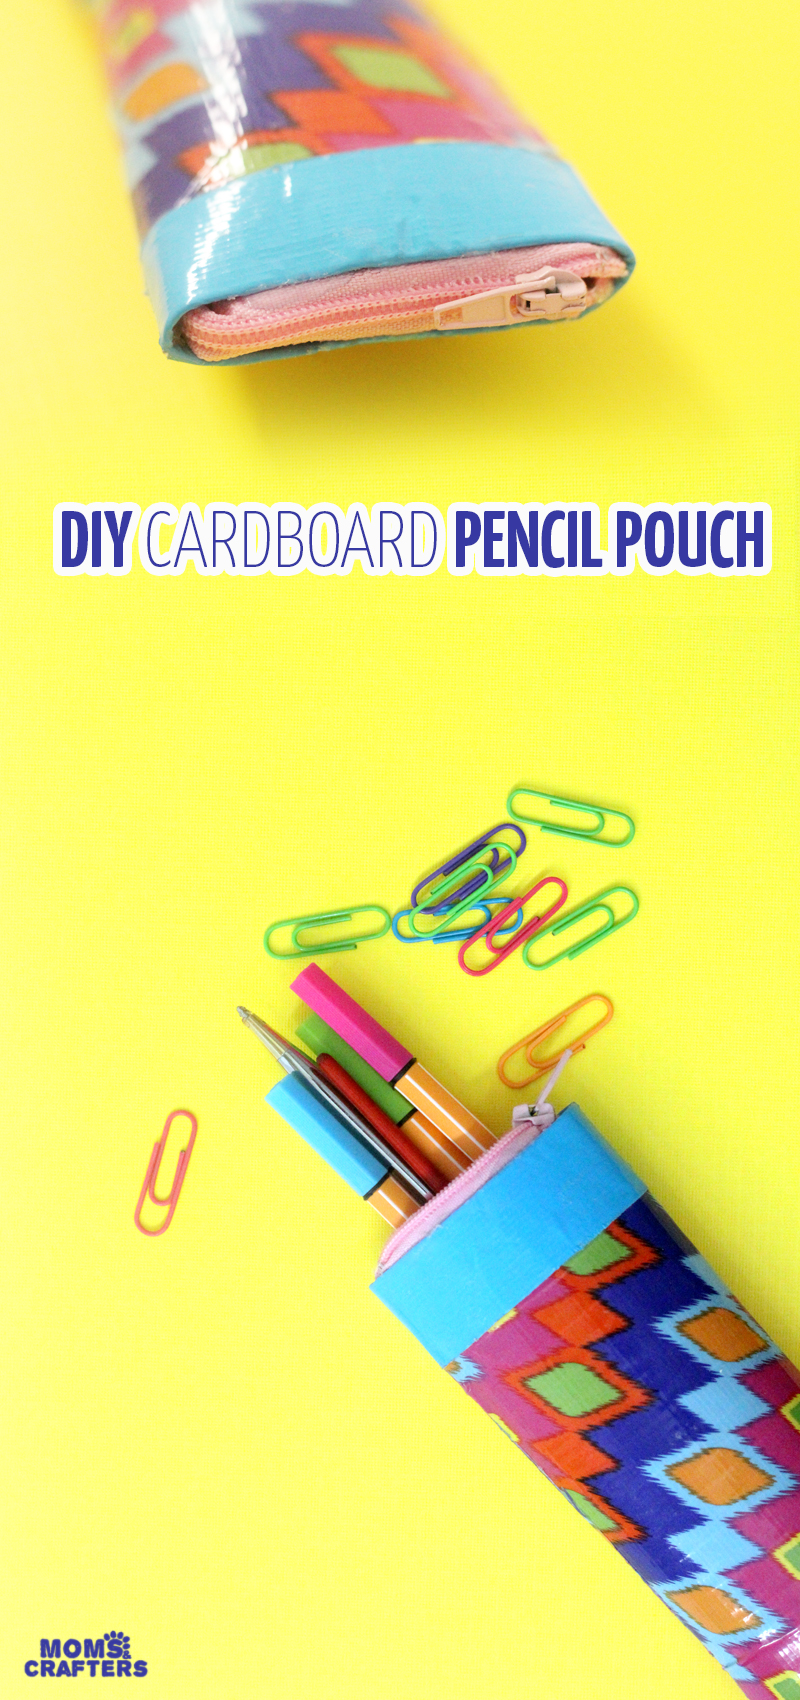 Make this easy pencil pouch from cardboard tubes - yep, you heard right! I made this adorable pencil case using upcycled toilet paper rolls that were headed for the trash. I use it to stow my adult coloring tools for my current work in progress but it's great for pencils, and a perfect back to school craft for big kids, teens, and tweens!